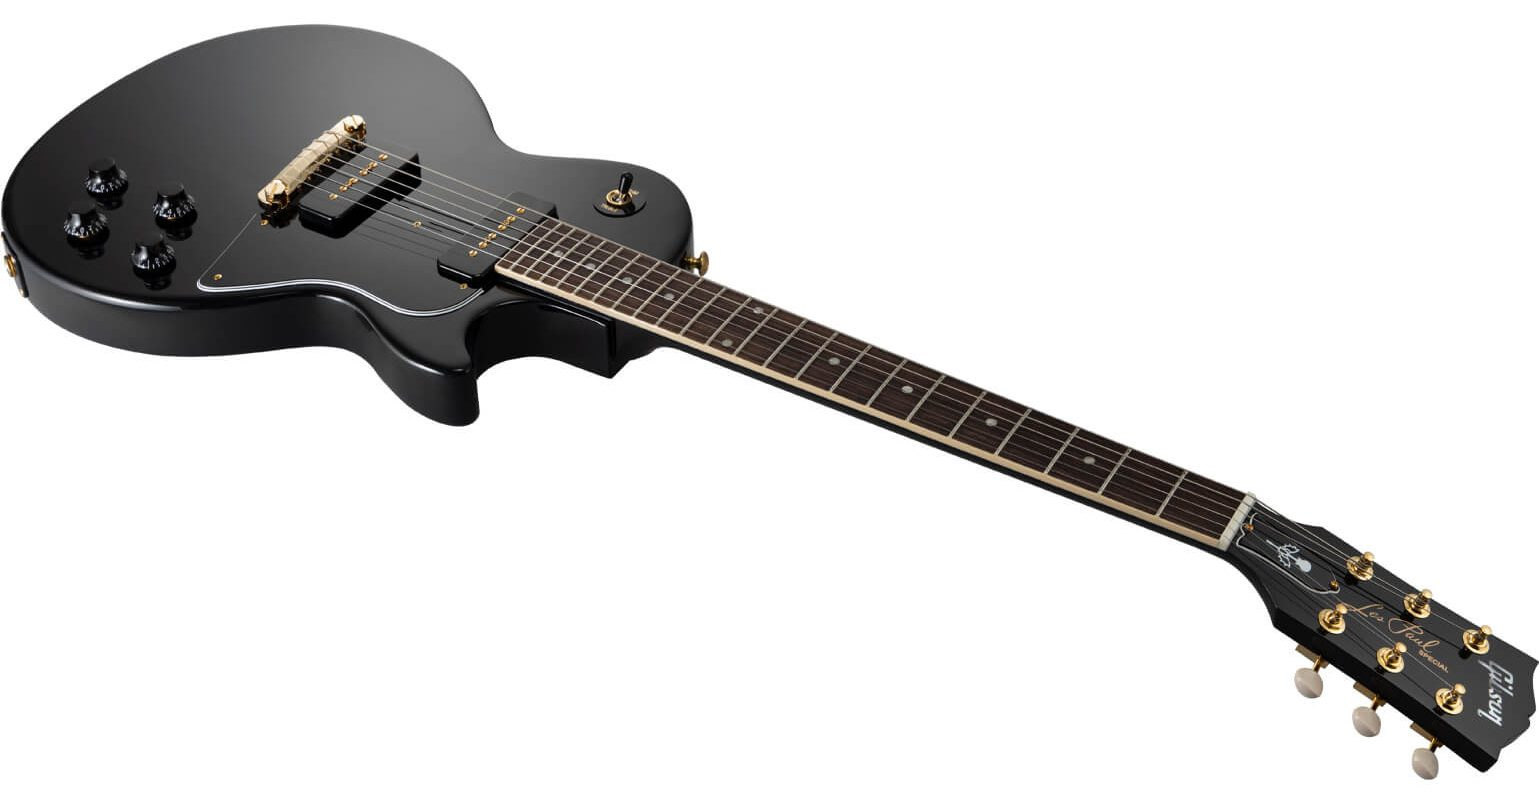 Gibson School of Rock Les Paul Special this is one badass guitar